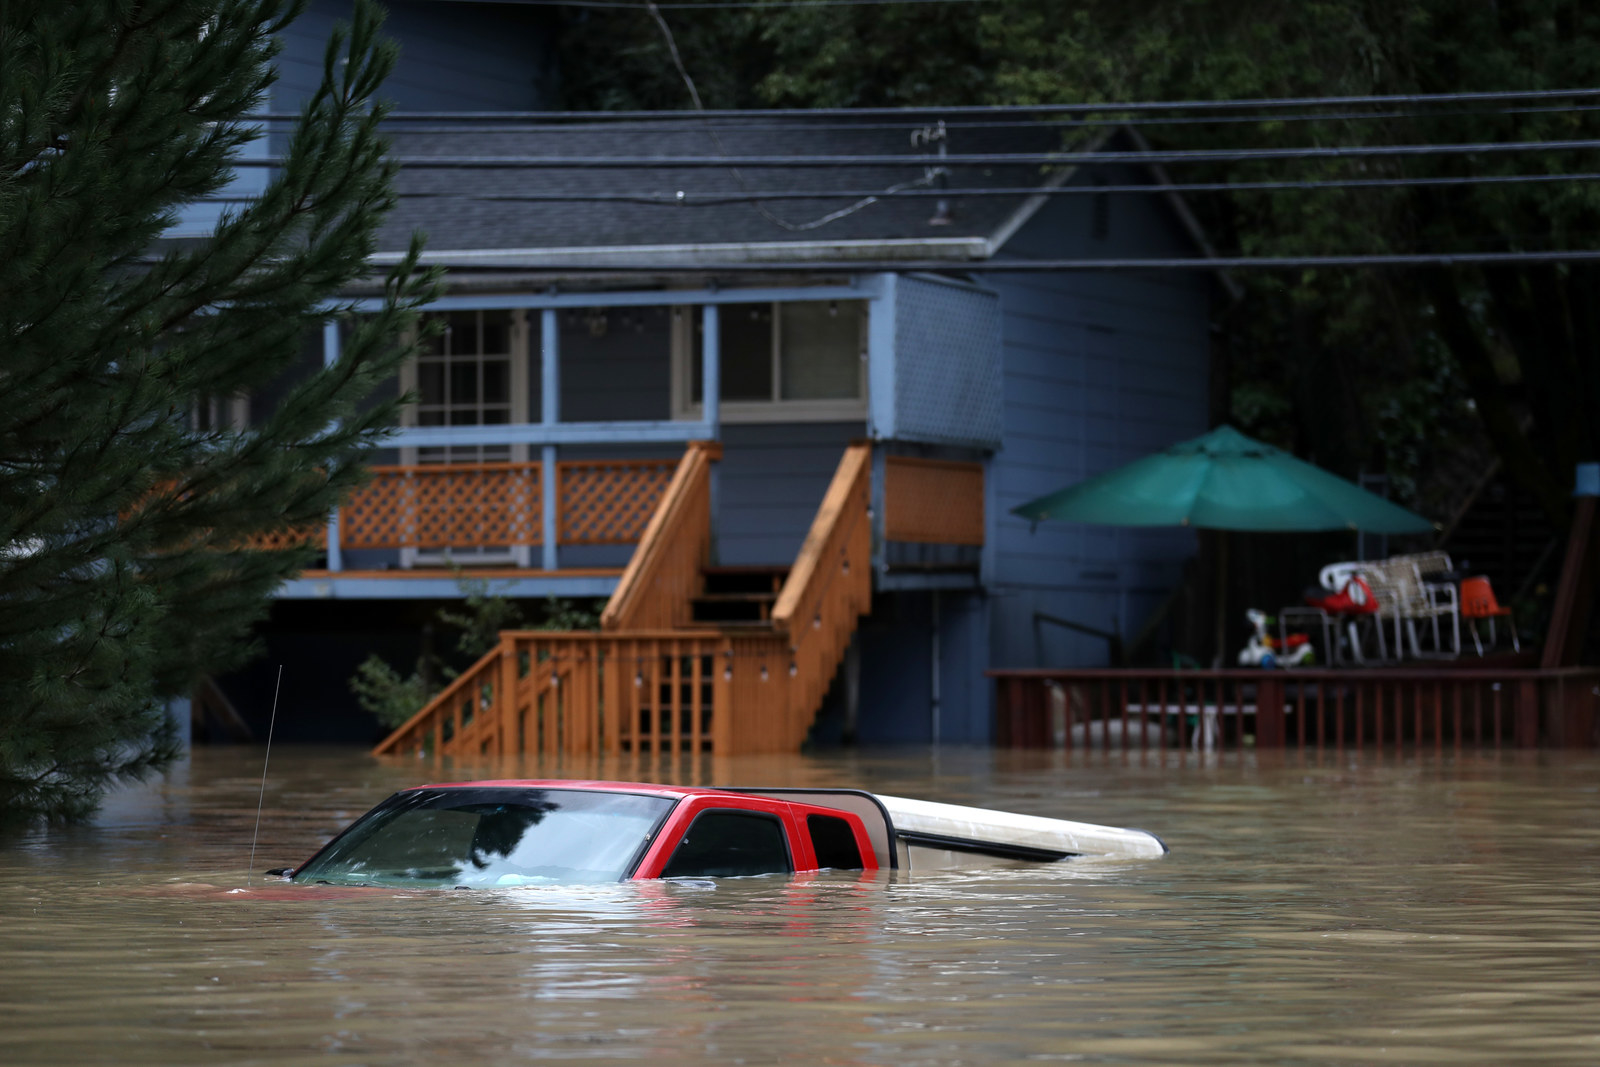 A car sits underwater in a flooded neighborhood on February 27, 2019 in Forestville, California.